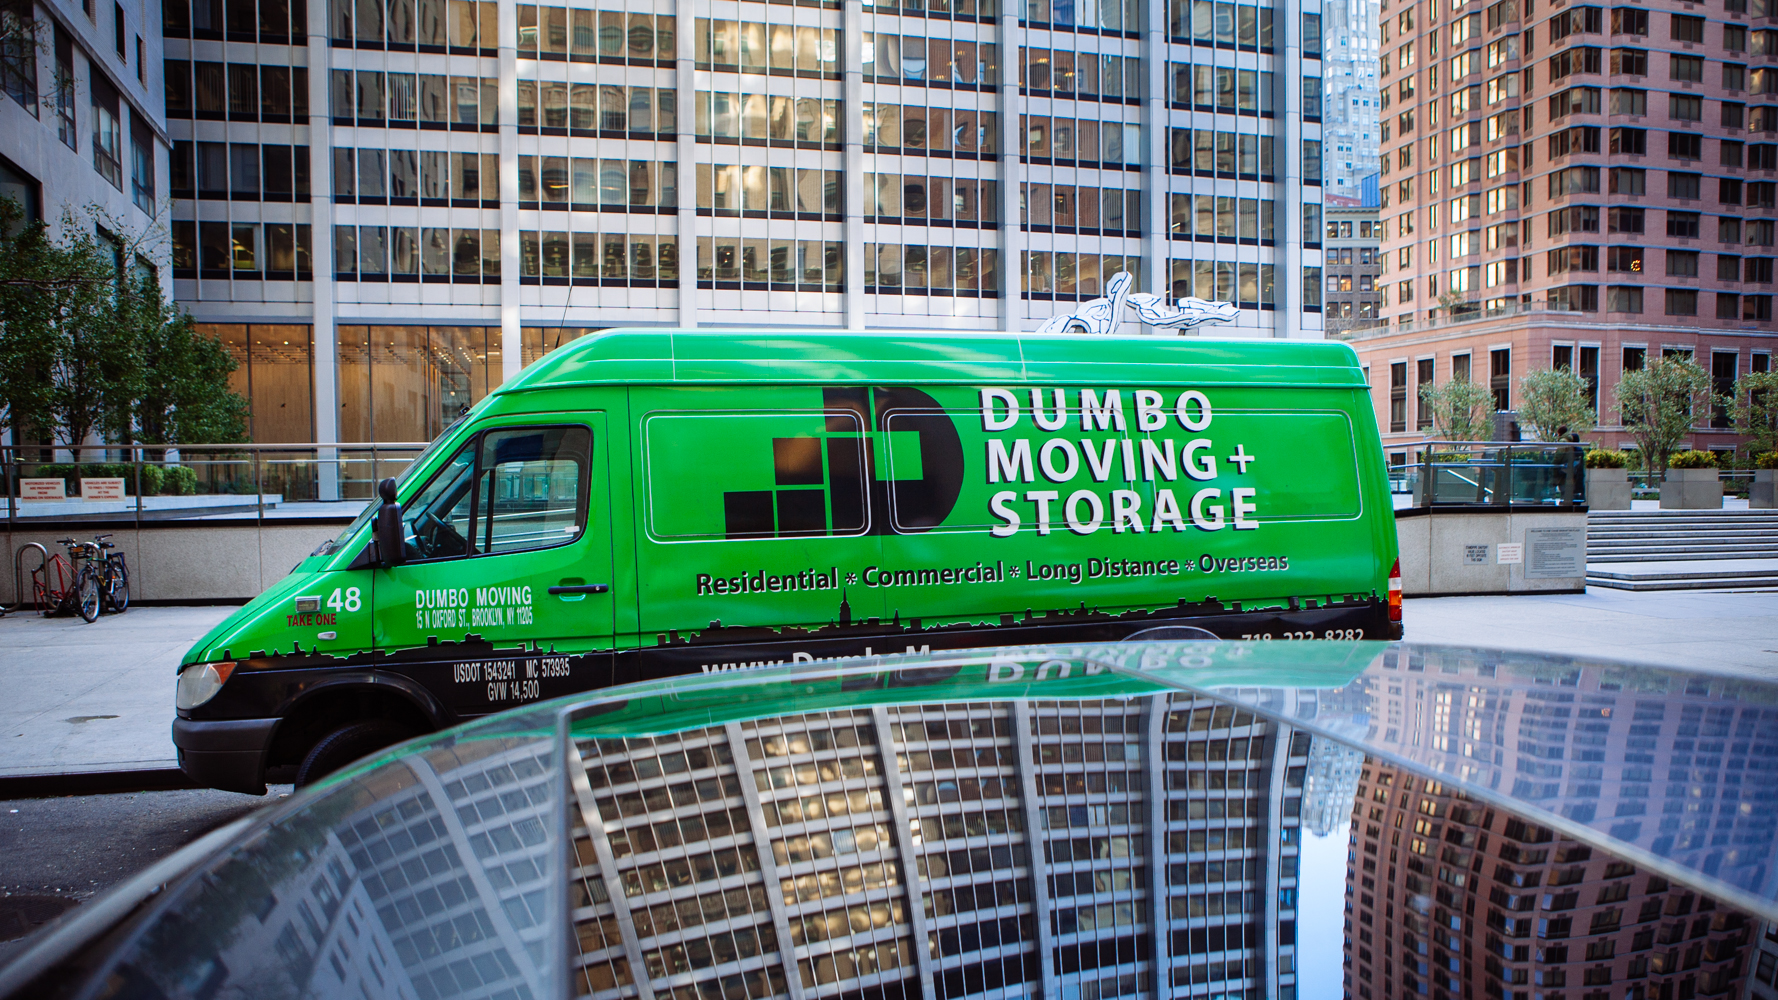 Captivating Dumbo Moving U0026 Storage Opens For Business With Two Trucks And An American Moving  And Storage Association (AMSA) Membership. The Company Dubs Itself Dumbo In  ...